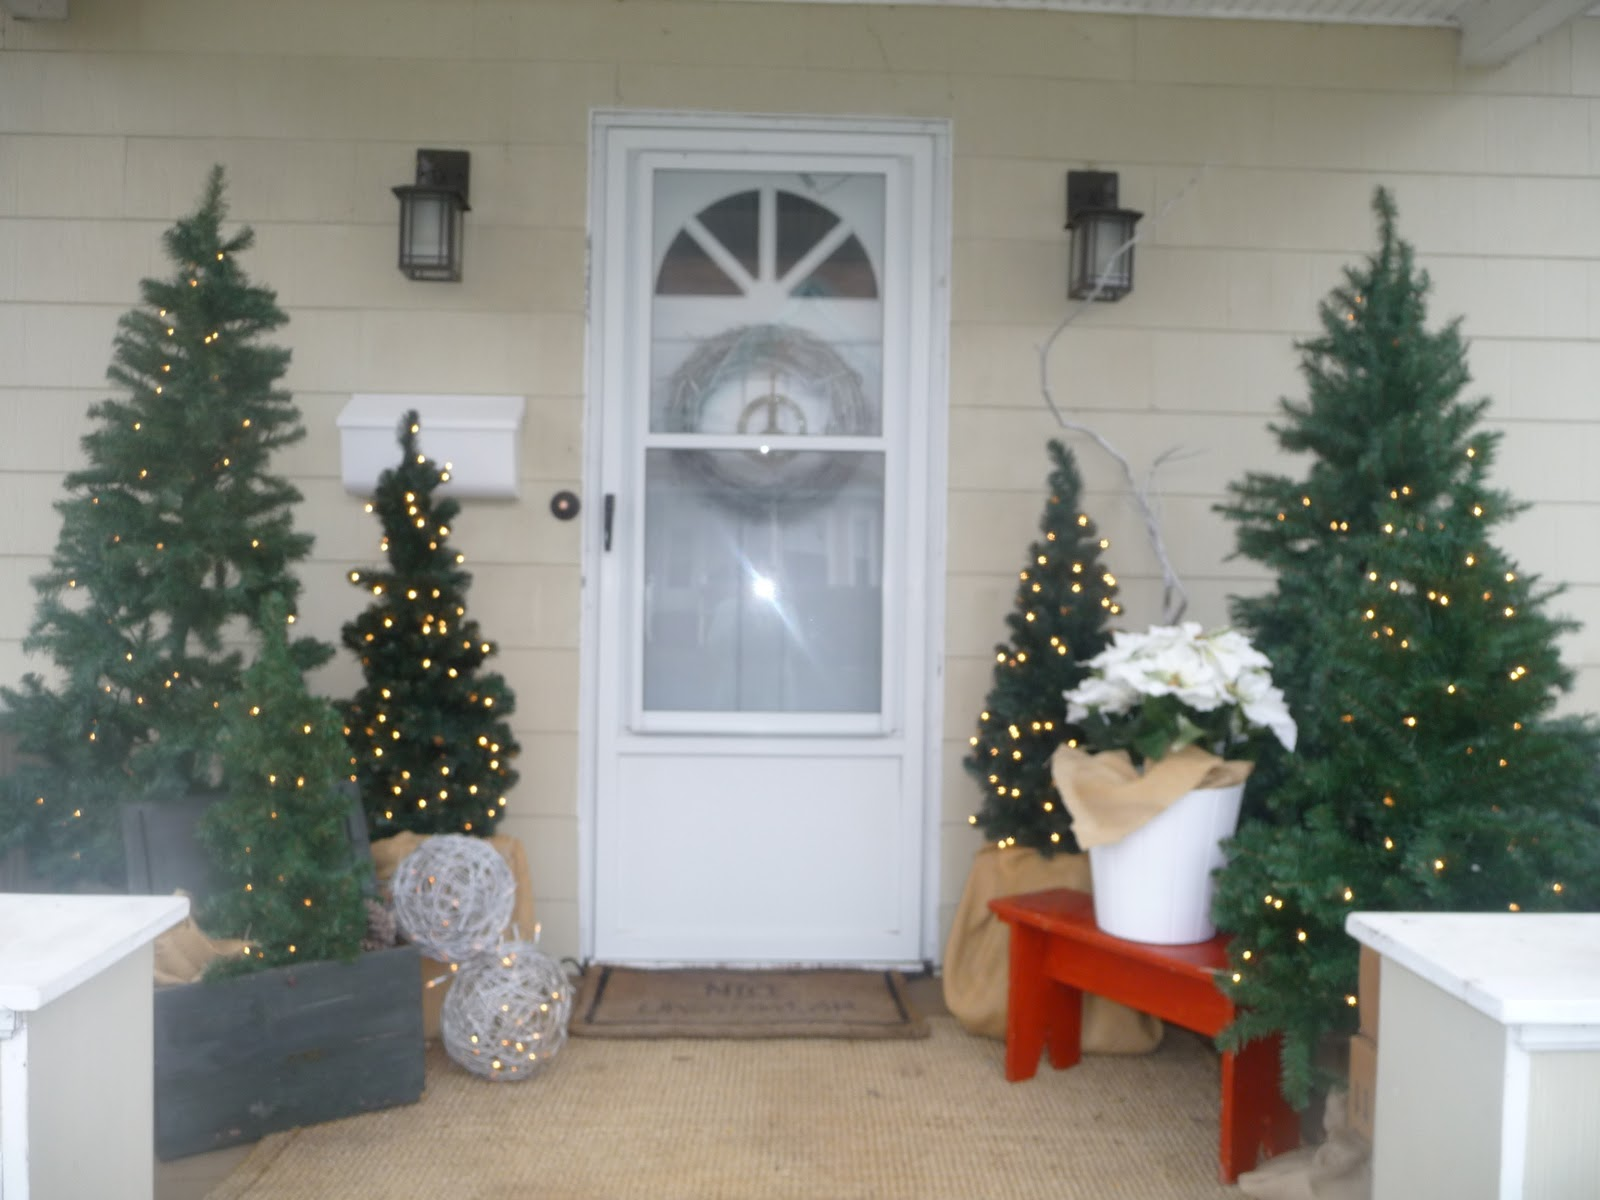 rita hurley christmas decorations front porch - Front Porch Christmas Decorations Ideas